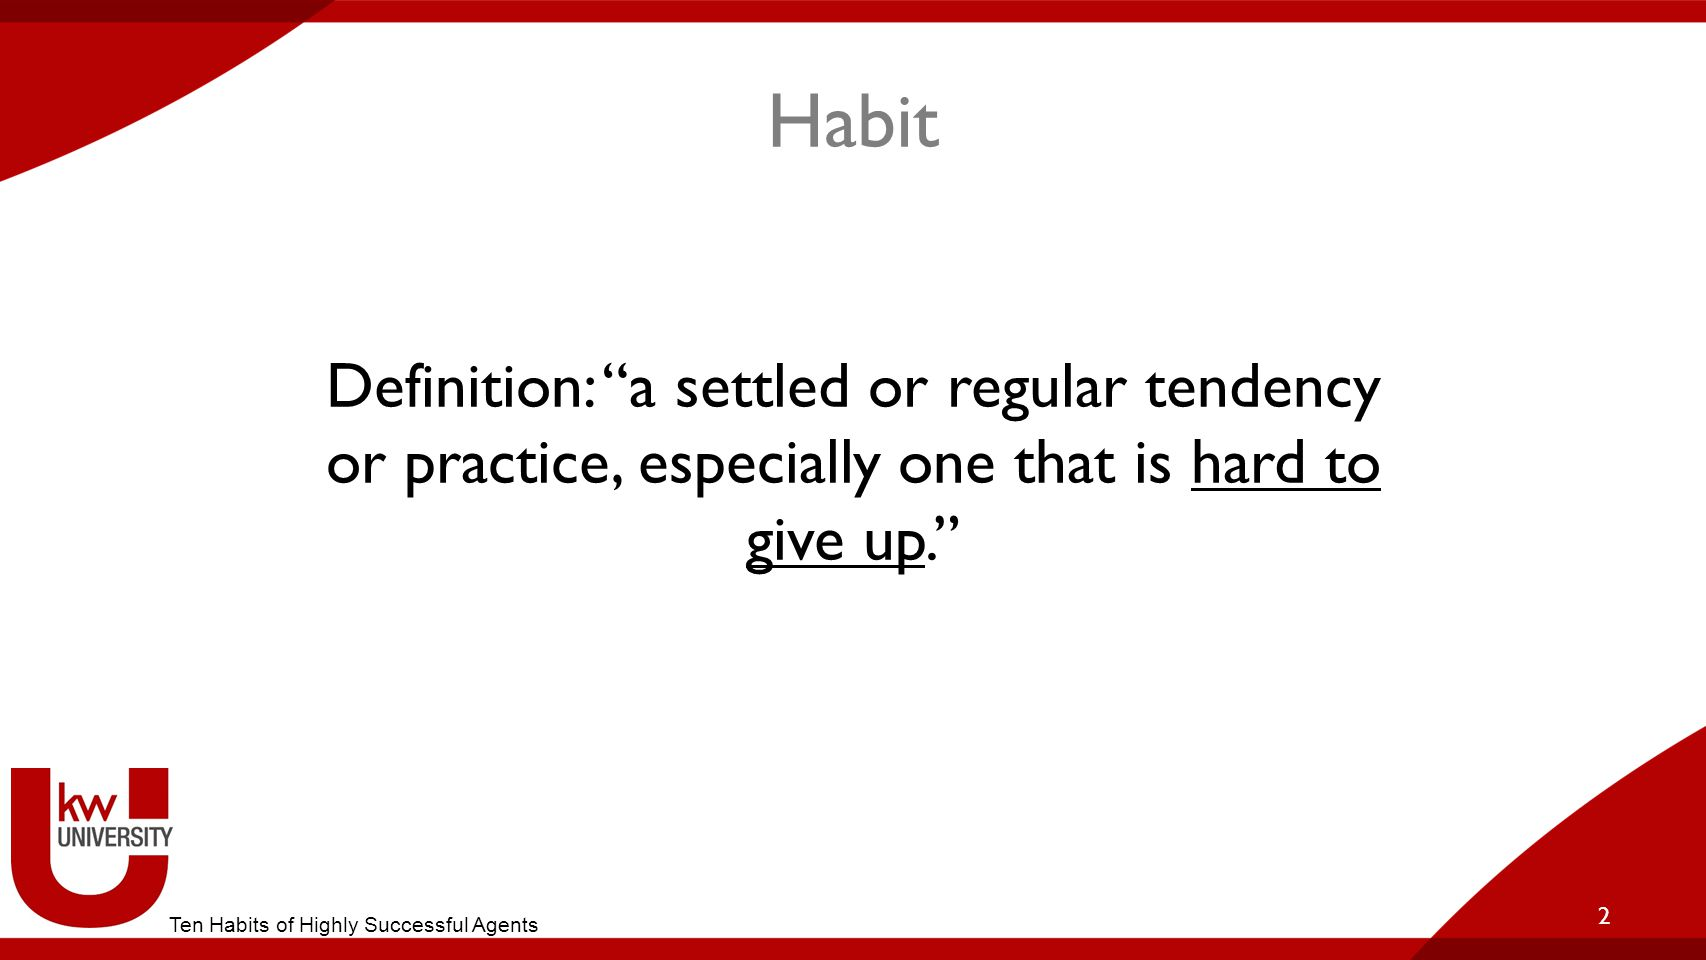 Title of Breakout Habit. Definition: a settled or regular tendency or practice, especially one that is hard to give up.